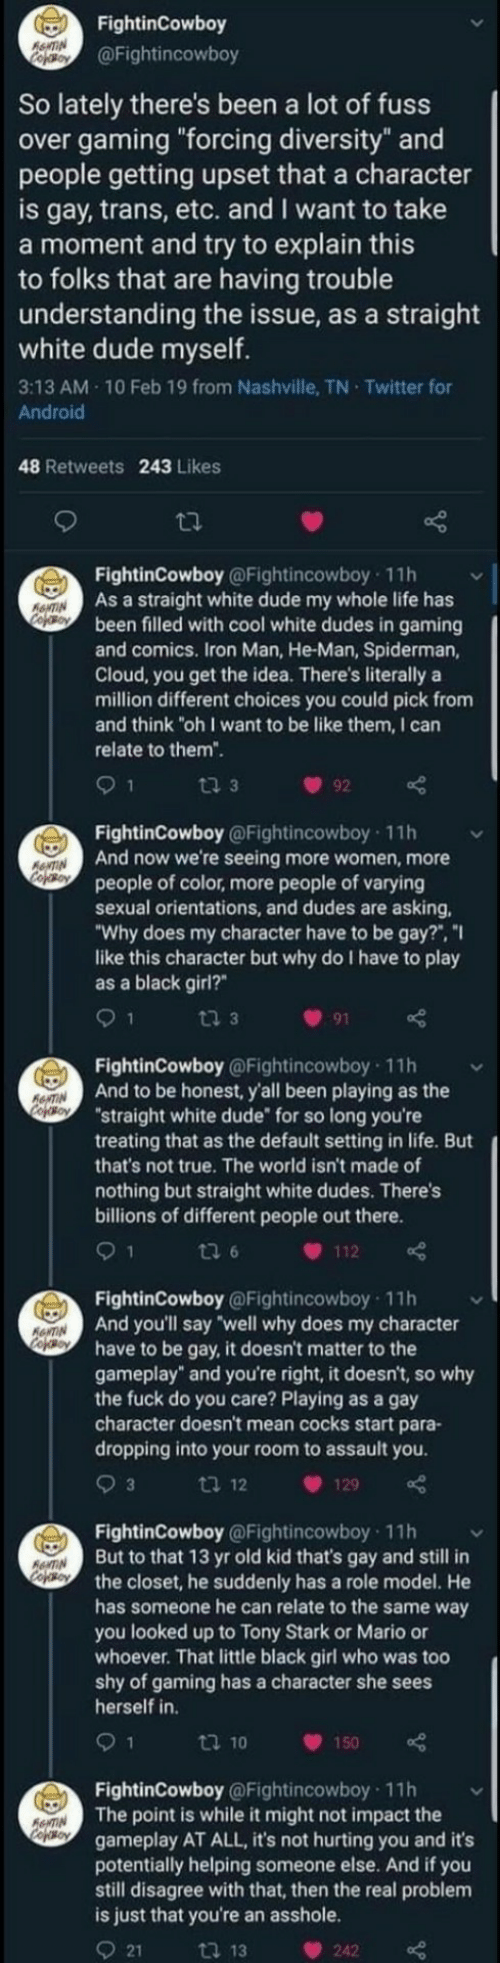 "Mario: FightinCowboy  RewTIN  Cefoy  @Fightincowboy  So lately there's been a lot of fuss  over gaming ""forcing diversity"" and  people getting upset that a character  is gay, trans, etc. and I want to take  a moment and try to explain this  to folks that are having trouble  understanding the issue, as a straight  white dude myself.  3:13 AM 10 Feb 19 from Nashville, TN Twitter for  Android  48 Retweets 243 Likes  FightinCowboy @Fightincowboy 11h  As a straight white dude my whole life has  been filled with cool white dudes in gaming  and comics. Iron Man, He-Man, Spiderman,  Cloud, you get the idea. There's literally a  million different choices you could pick from  and think ""oh I want to be like them, I can  ANTIN  Cooy  relate to them"".  ti 3  92  FightinCowboy @Fightincowboy 11h  And now we're seeing more women, more  people of color, more people of varying  sexual orientations, and dudes are asking  ""Why does my character have to be gay?"", ""I  like this character but why do I have to play  as a black girl?  ANTIN  CofoBoy  9 1  ti 3  91  FightinCowboy @Fightincowboy 11h  And to be honest, y'all been playing as the  ""straight white dude for so long you're  treating that as the default setting in life. But  that's not true. The world isn't made of  RNTIN  CopOBoY  nothing but straight white dudes. There's  billions of different people out there.  1  ti 6  112  FightinCowboy @Fightincowboy 11h  And you'll say well why does my character  have to be gay, it doesn't matter to the  gameplay"" and you're right, it doesn't, so why  the fuck do you care? Playing as a gay  character doesn't mean cocks start para-  dropping into your room to assault you  ANTIN  cofeo  3  ti 12  129  FightinCowboy @Fightincowboy 11h  But to that 13 yr old kid that's gay and still in  the closet, he suddenly has a role model. He  has someone he can relate to the same way  you looked up to Tony Stark or Mario or  whoever. That little black girl who was too  shy of gaming has a character she sees  herself in  AANTIN  Cojso  9 1  t 10  150  FightinCowboy @Fightincowboy 11h  The point is while it might not impact the  gameplay AT ALL, it's not hurting you and it's  potentially helping someone else. And if you  still disagree with that, then the real problem  is just that you're an asshole.  AeNTIN  Cofeso  21  ti 13  242"